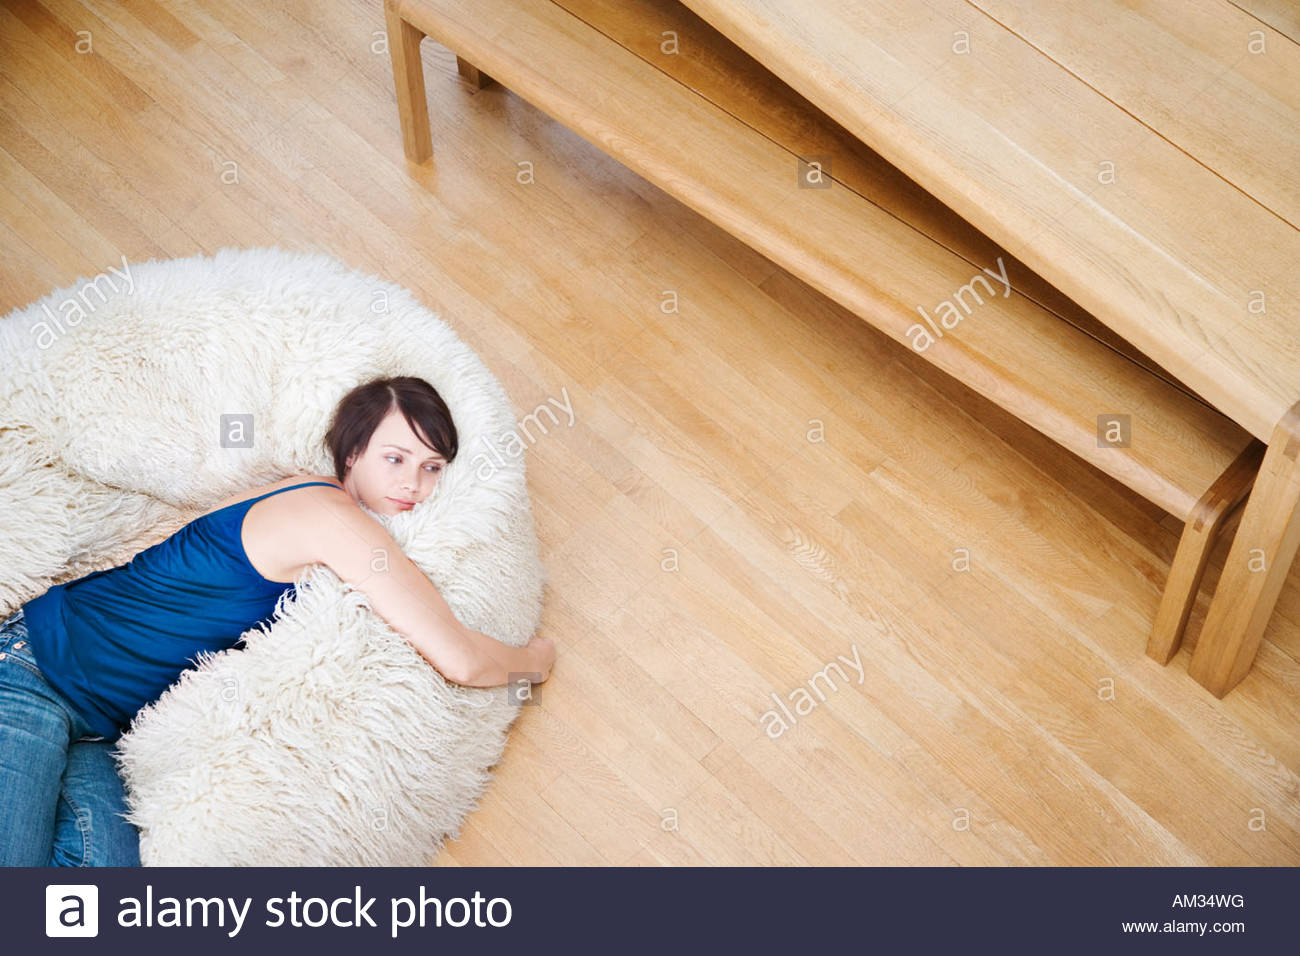 Woman on a furry bean bag chair - Stock Image